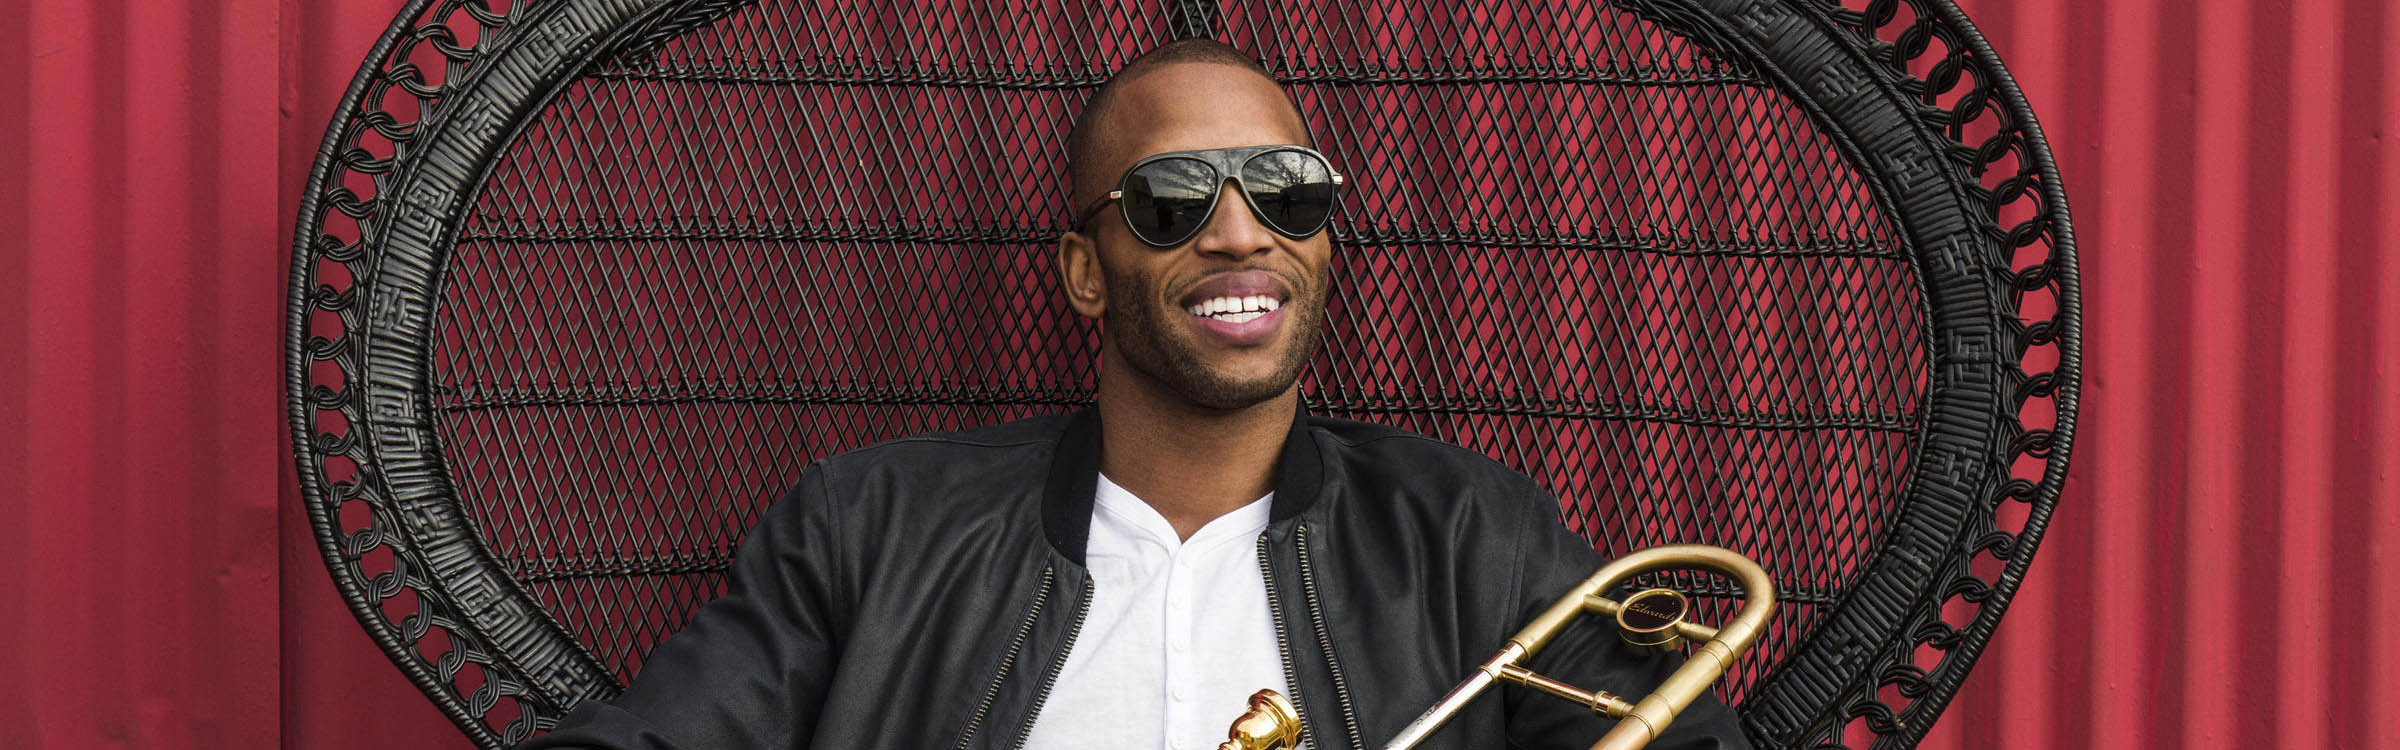 trombone shorty fot mathieu bitton